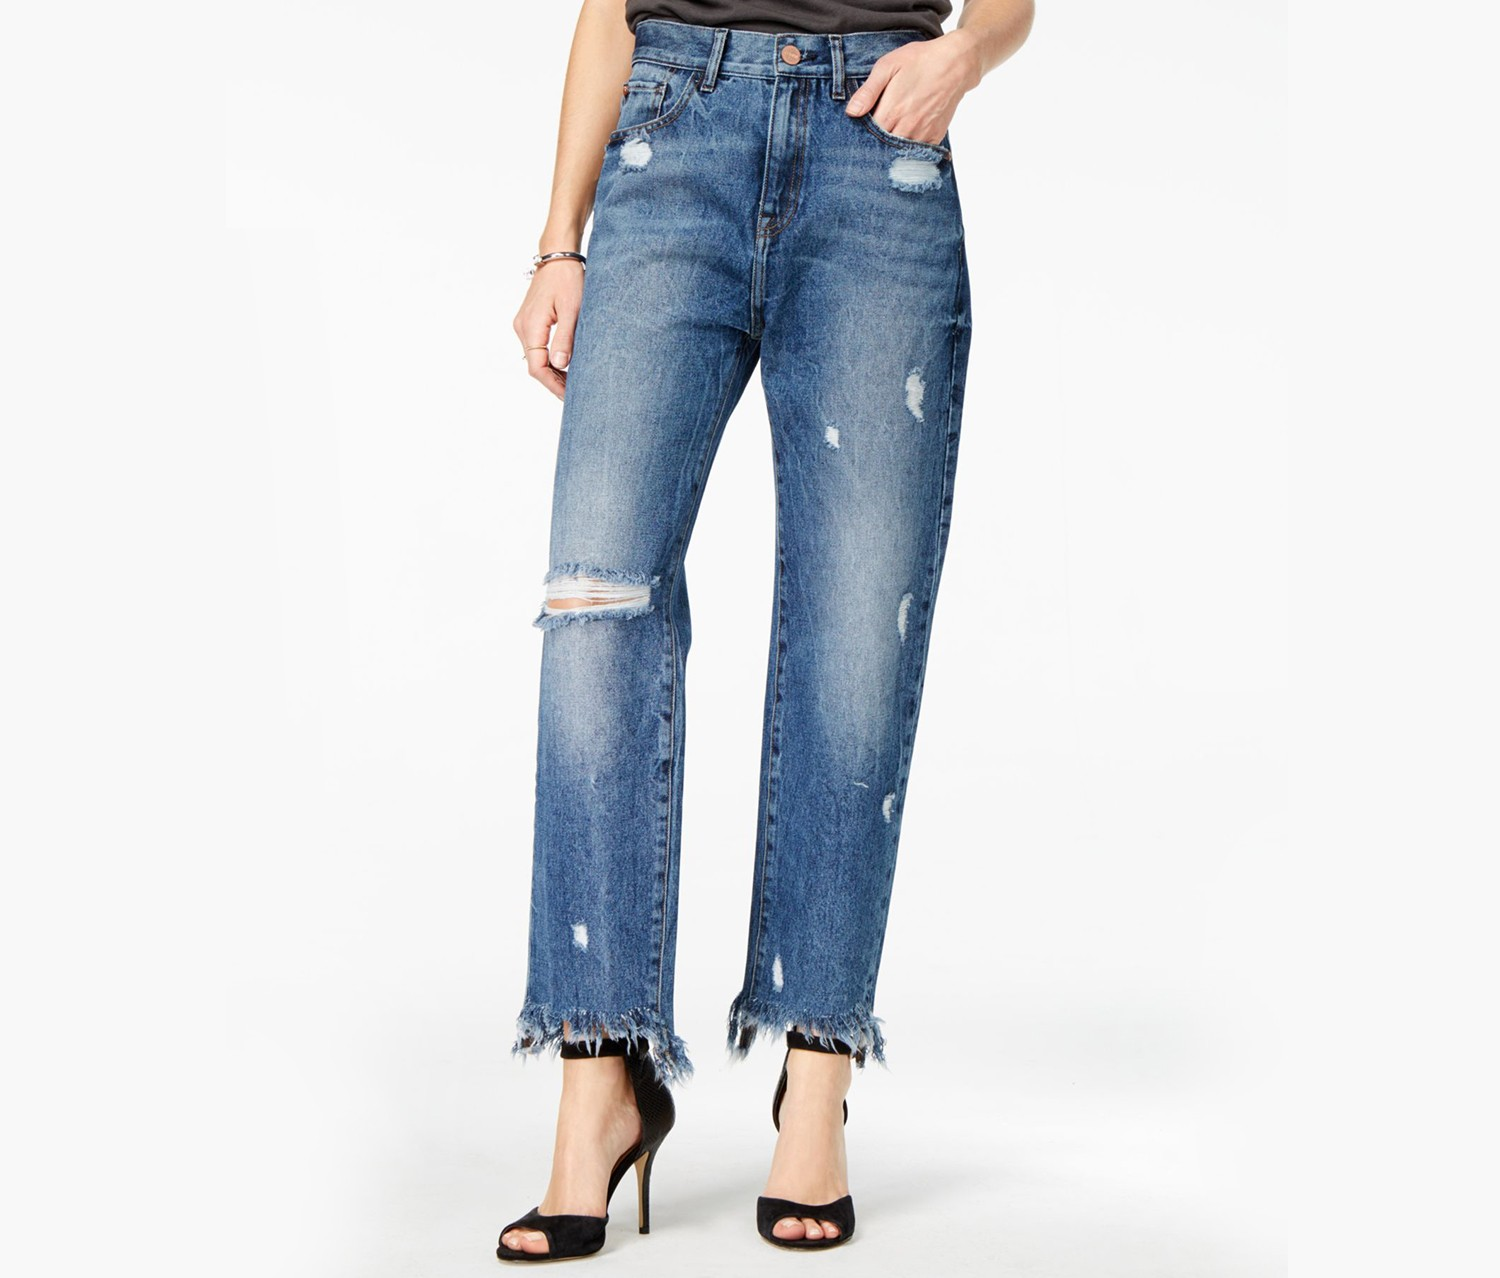 M1858 Frida Ripped Bergan Wash Wide Jeans, Bergan